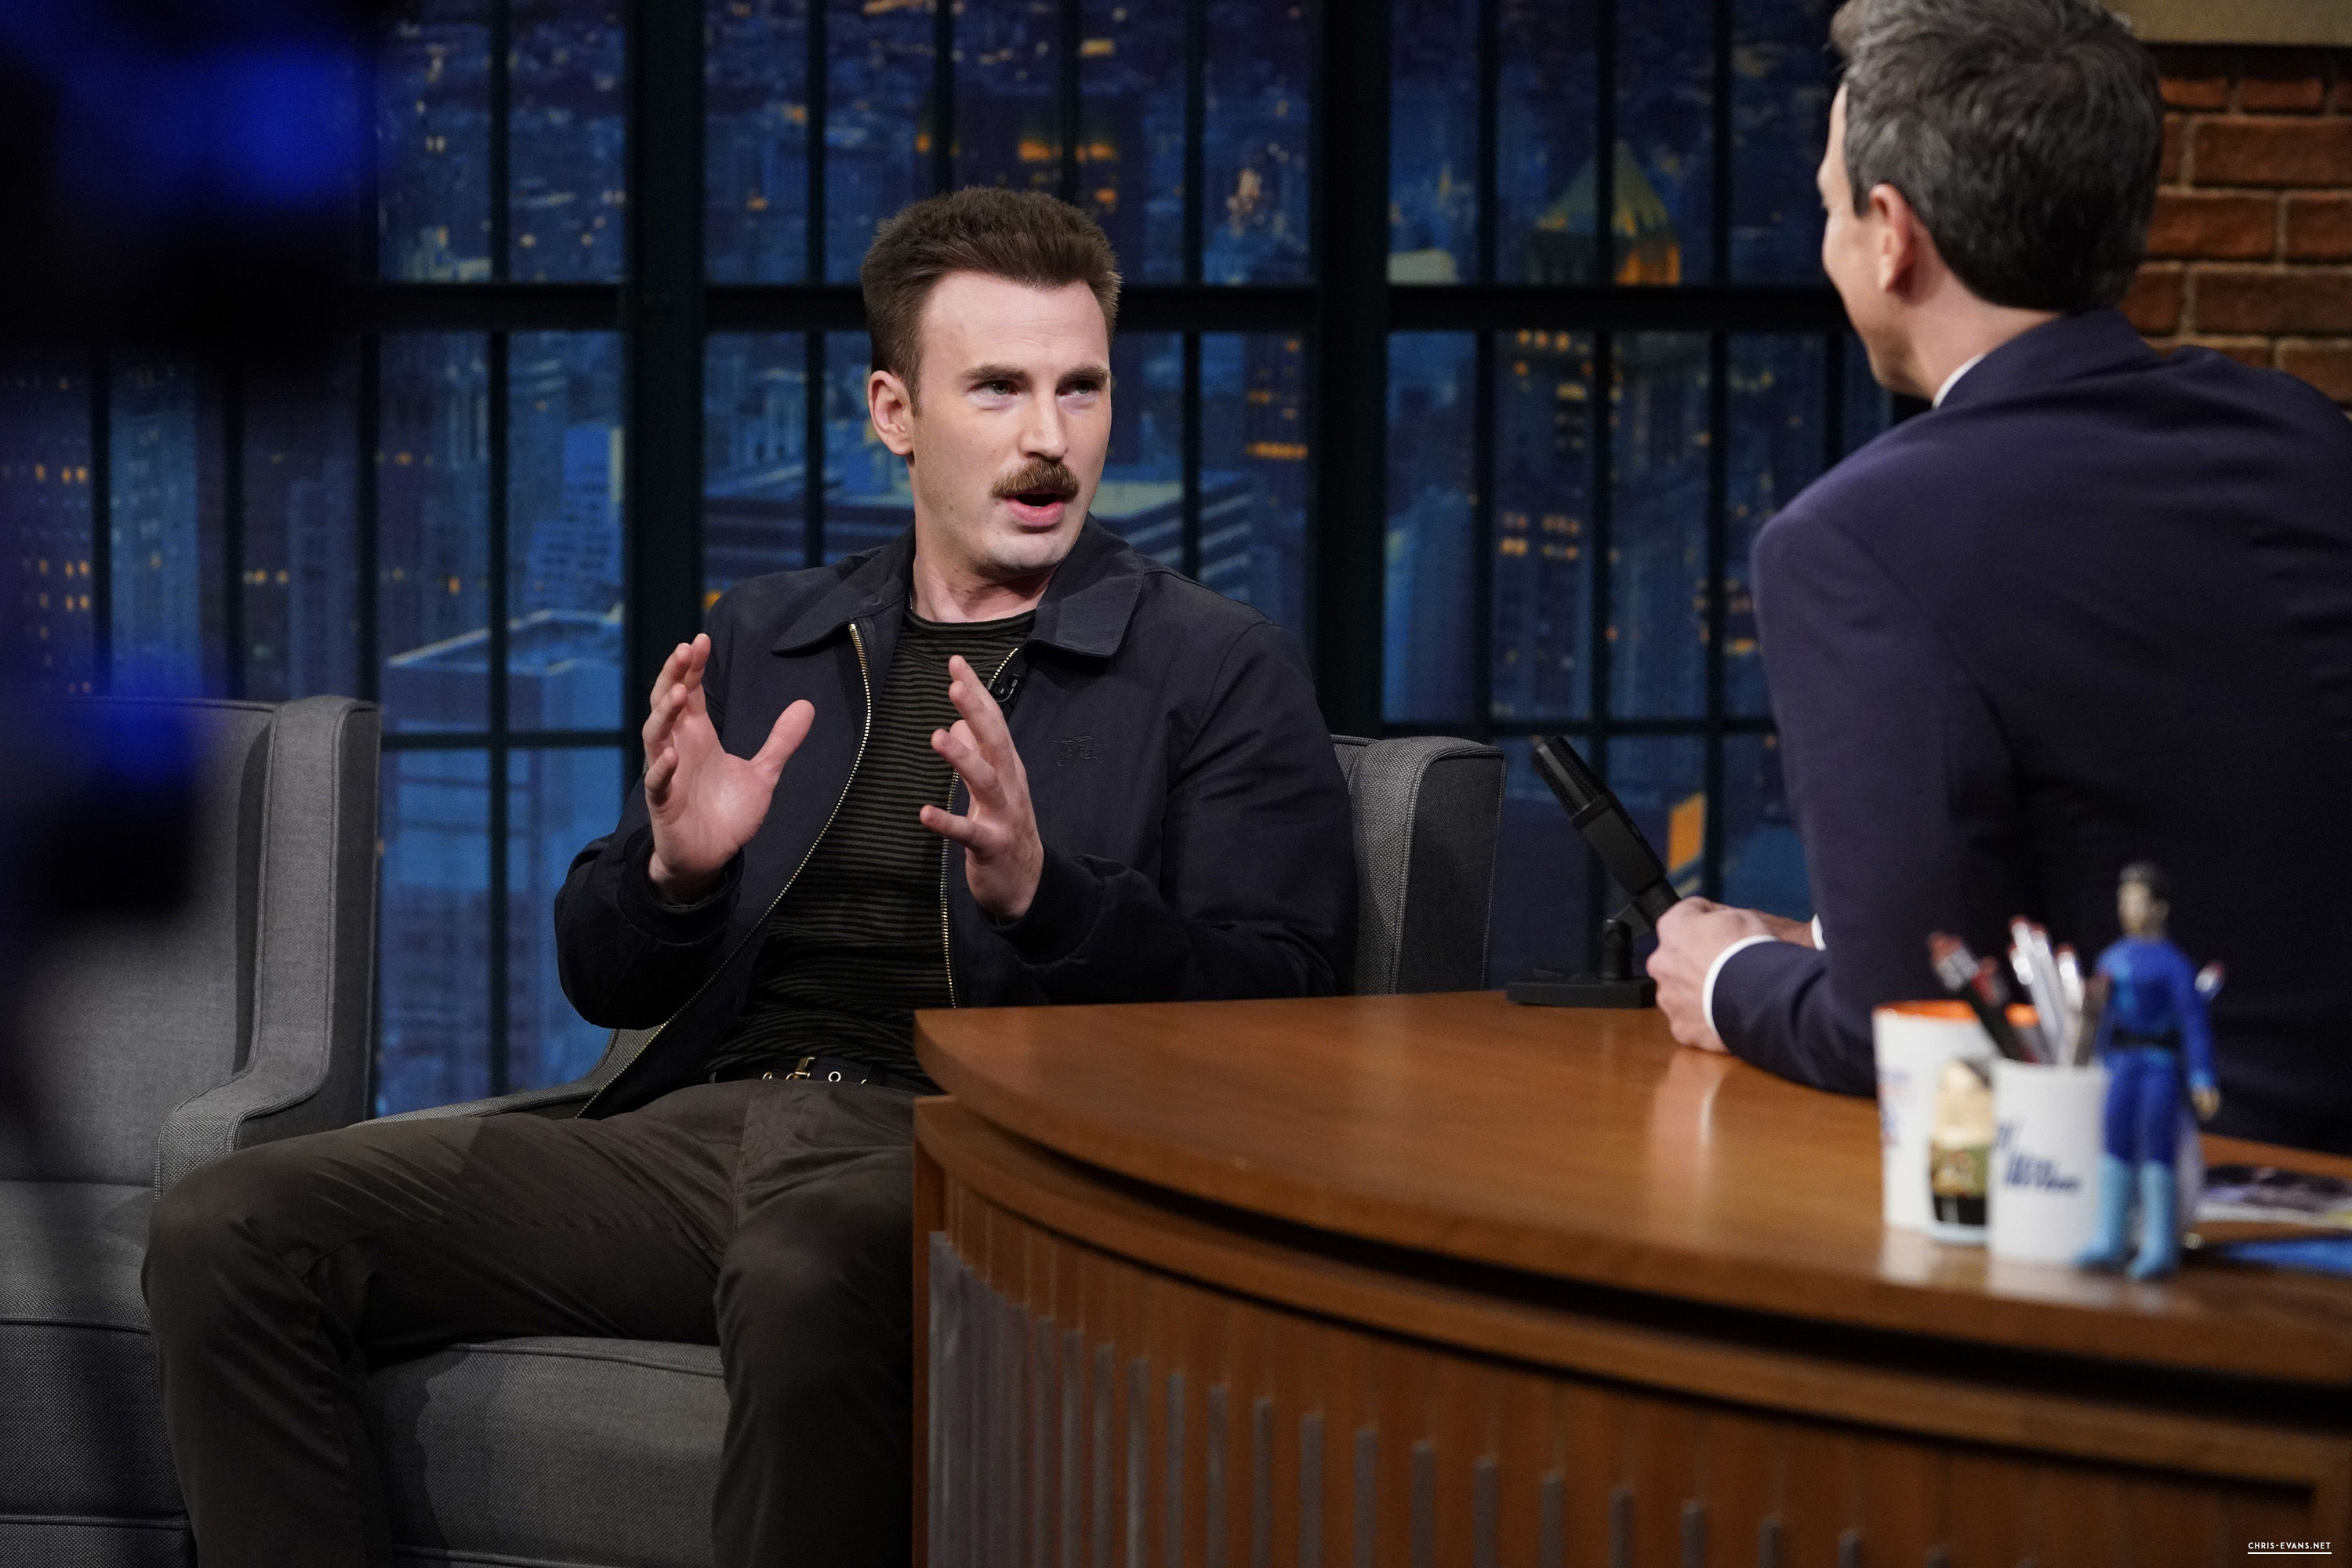 http://chris-evans.net/photos/albums/Appearances/2018/04%2023%20Late%20Night%20with%20Seth%20Meyers/003.jpg